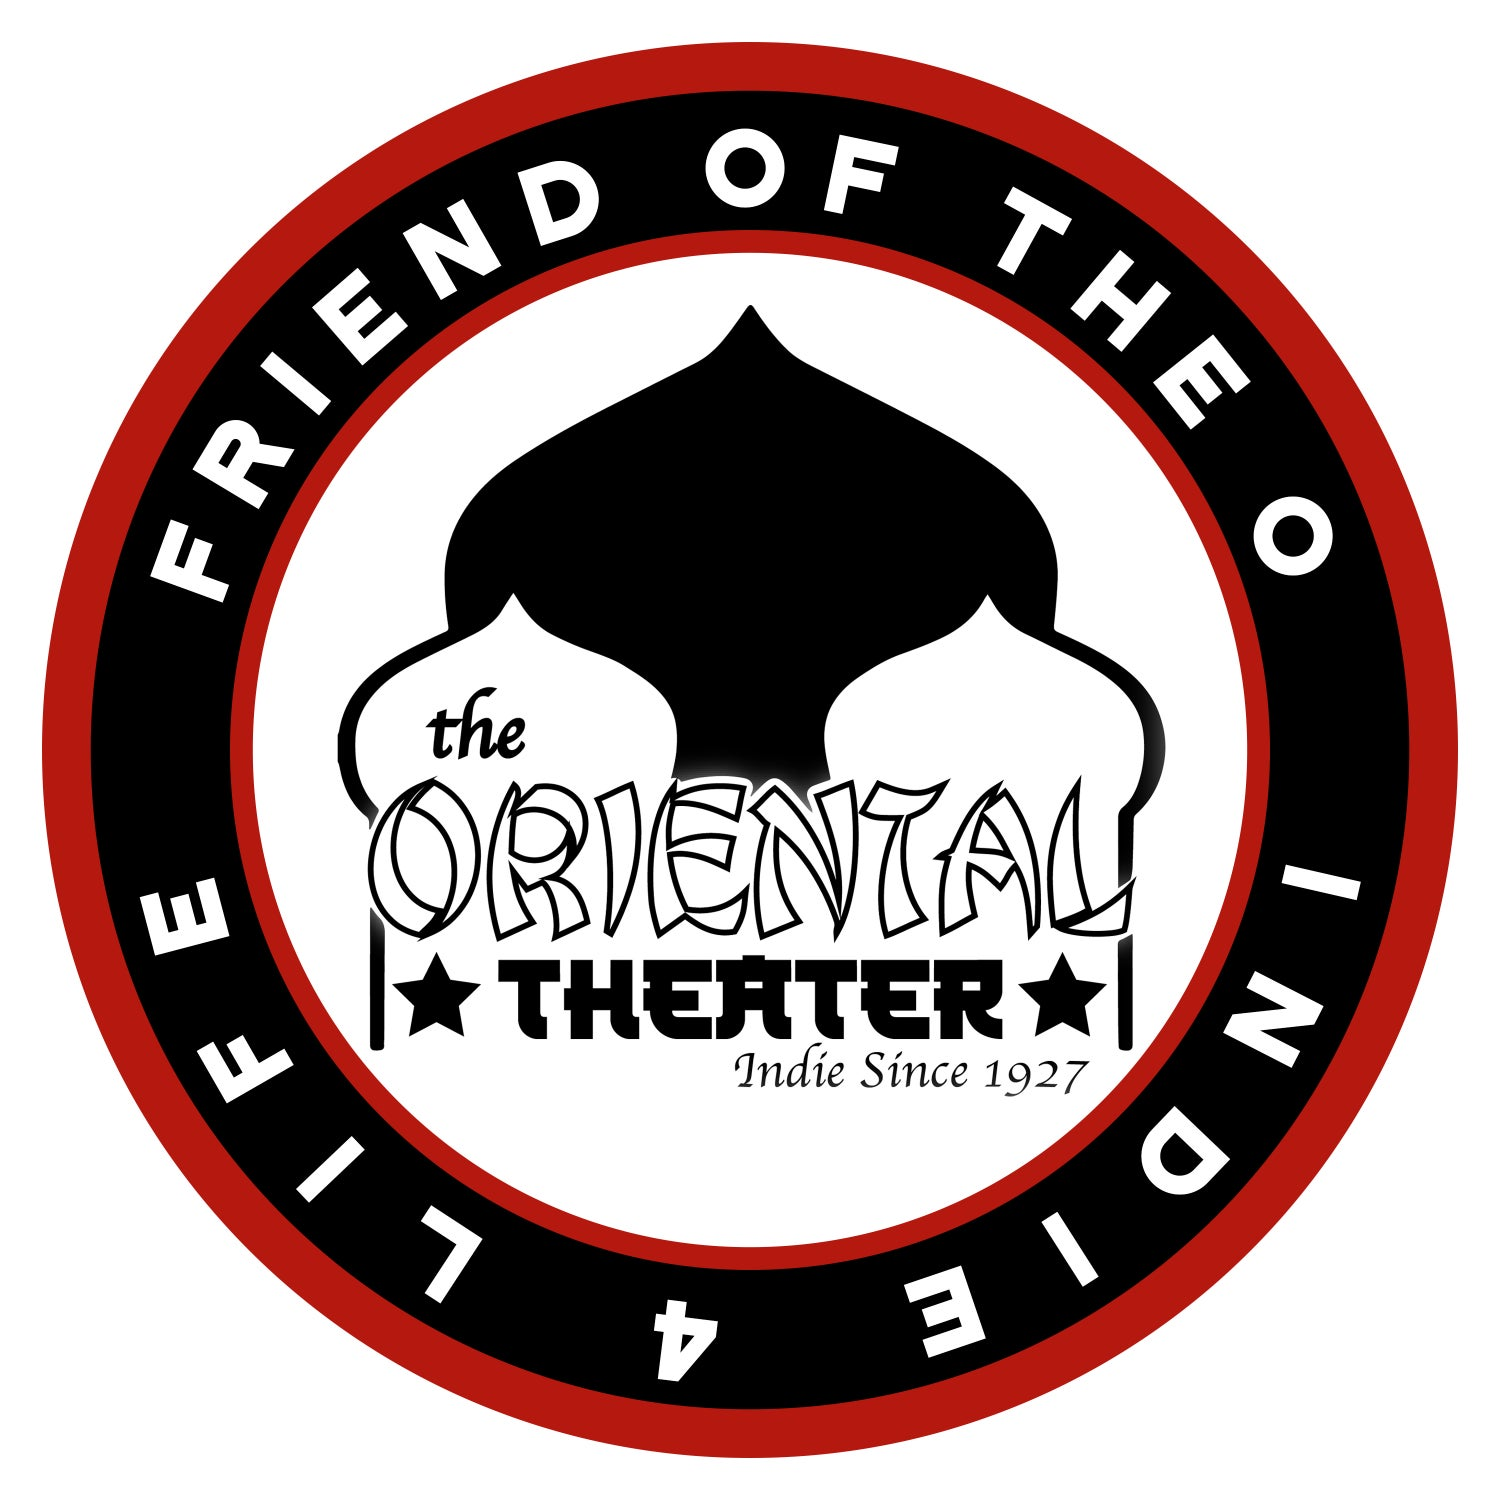 Image of Friend Of The Oriental Theater